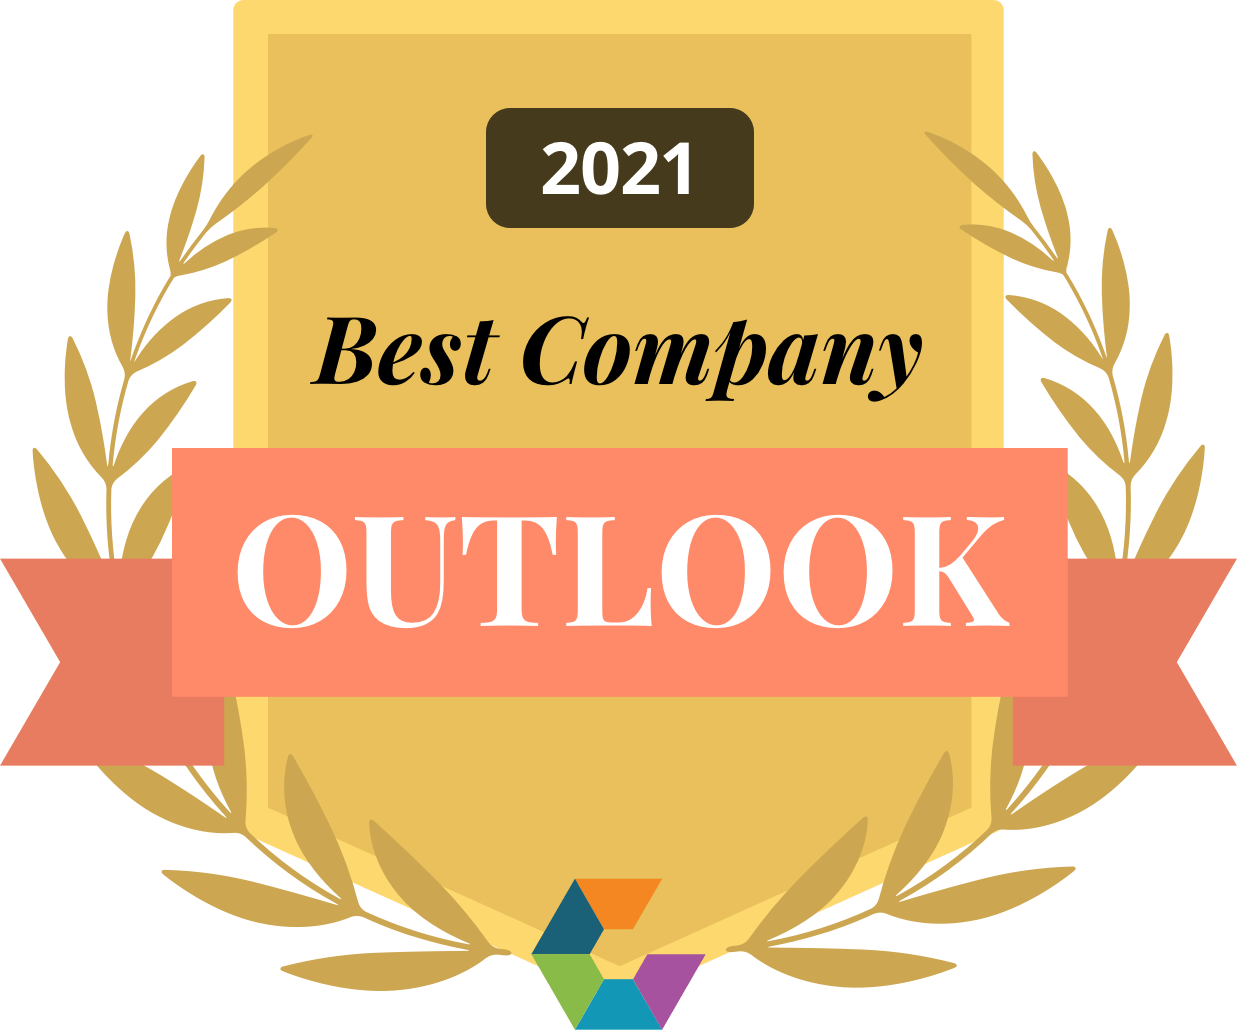 best company outlook 2021